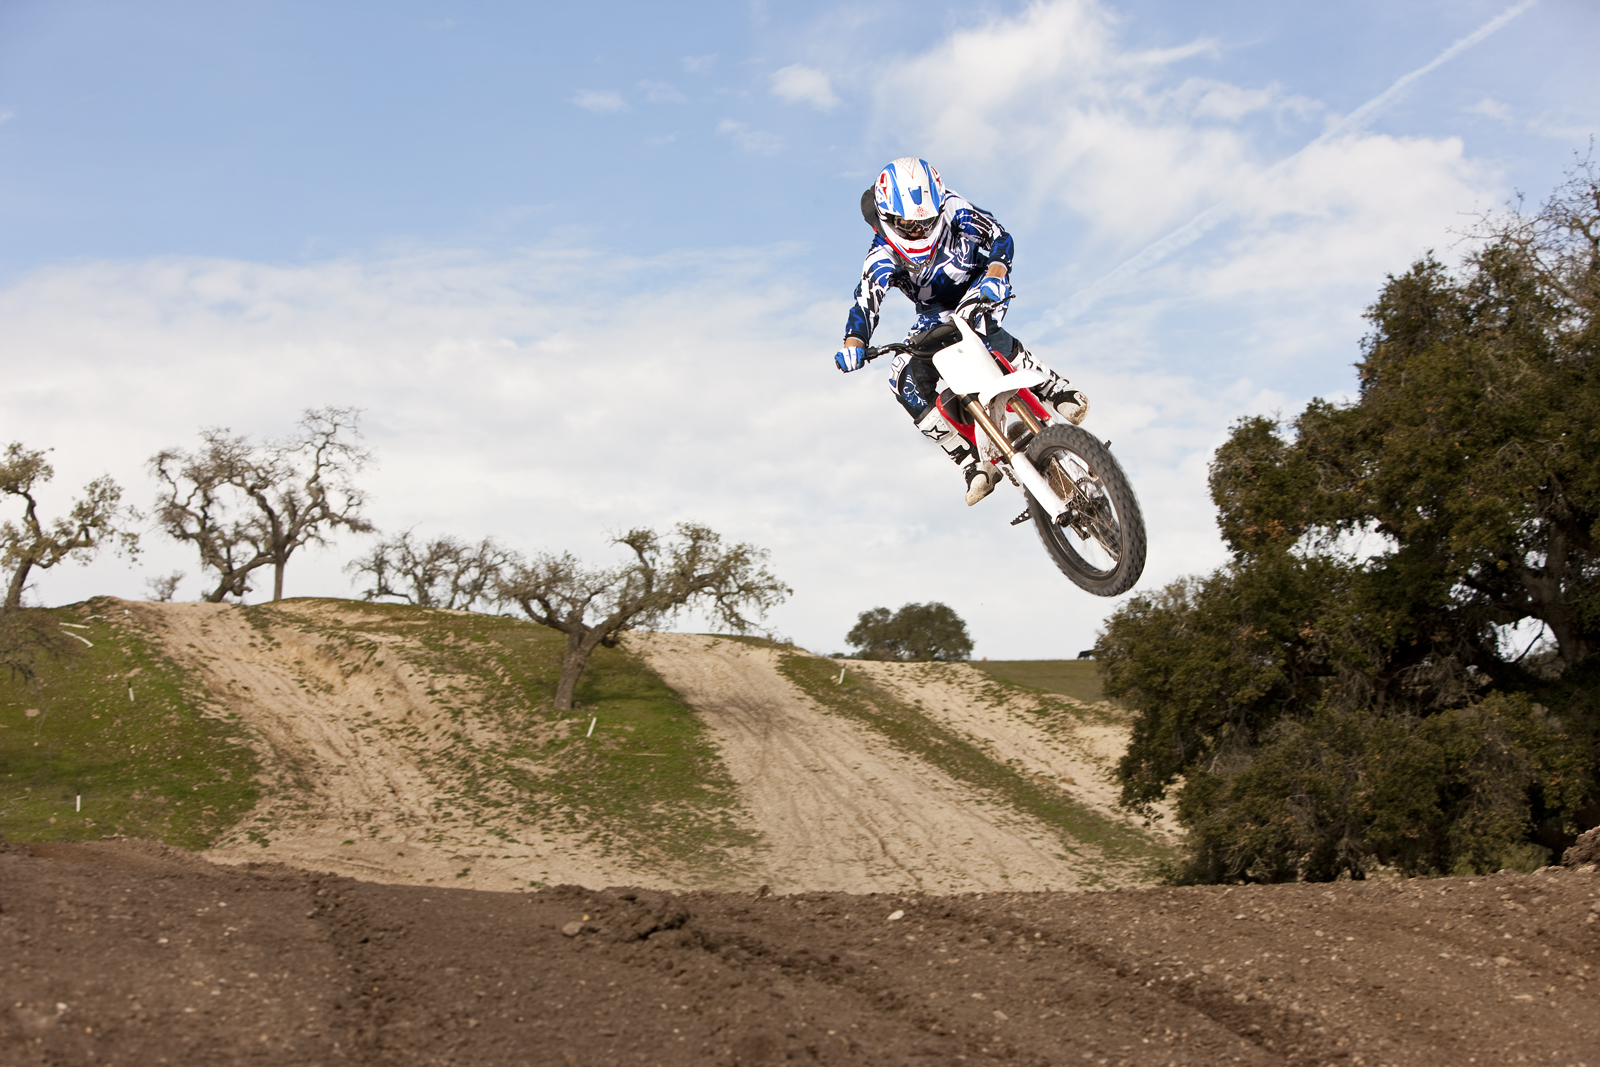 '.2010 Zero MX Electric Motorcycle: Zaca Station - Big Red Bike Jump.'